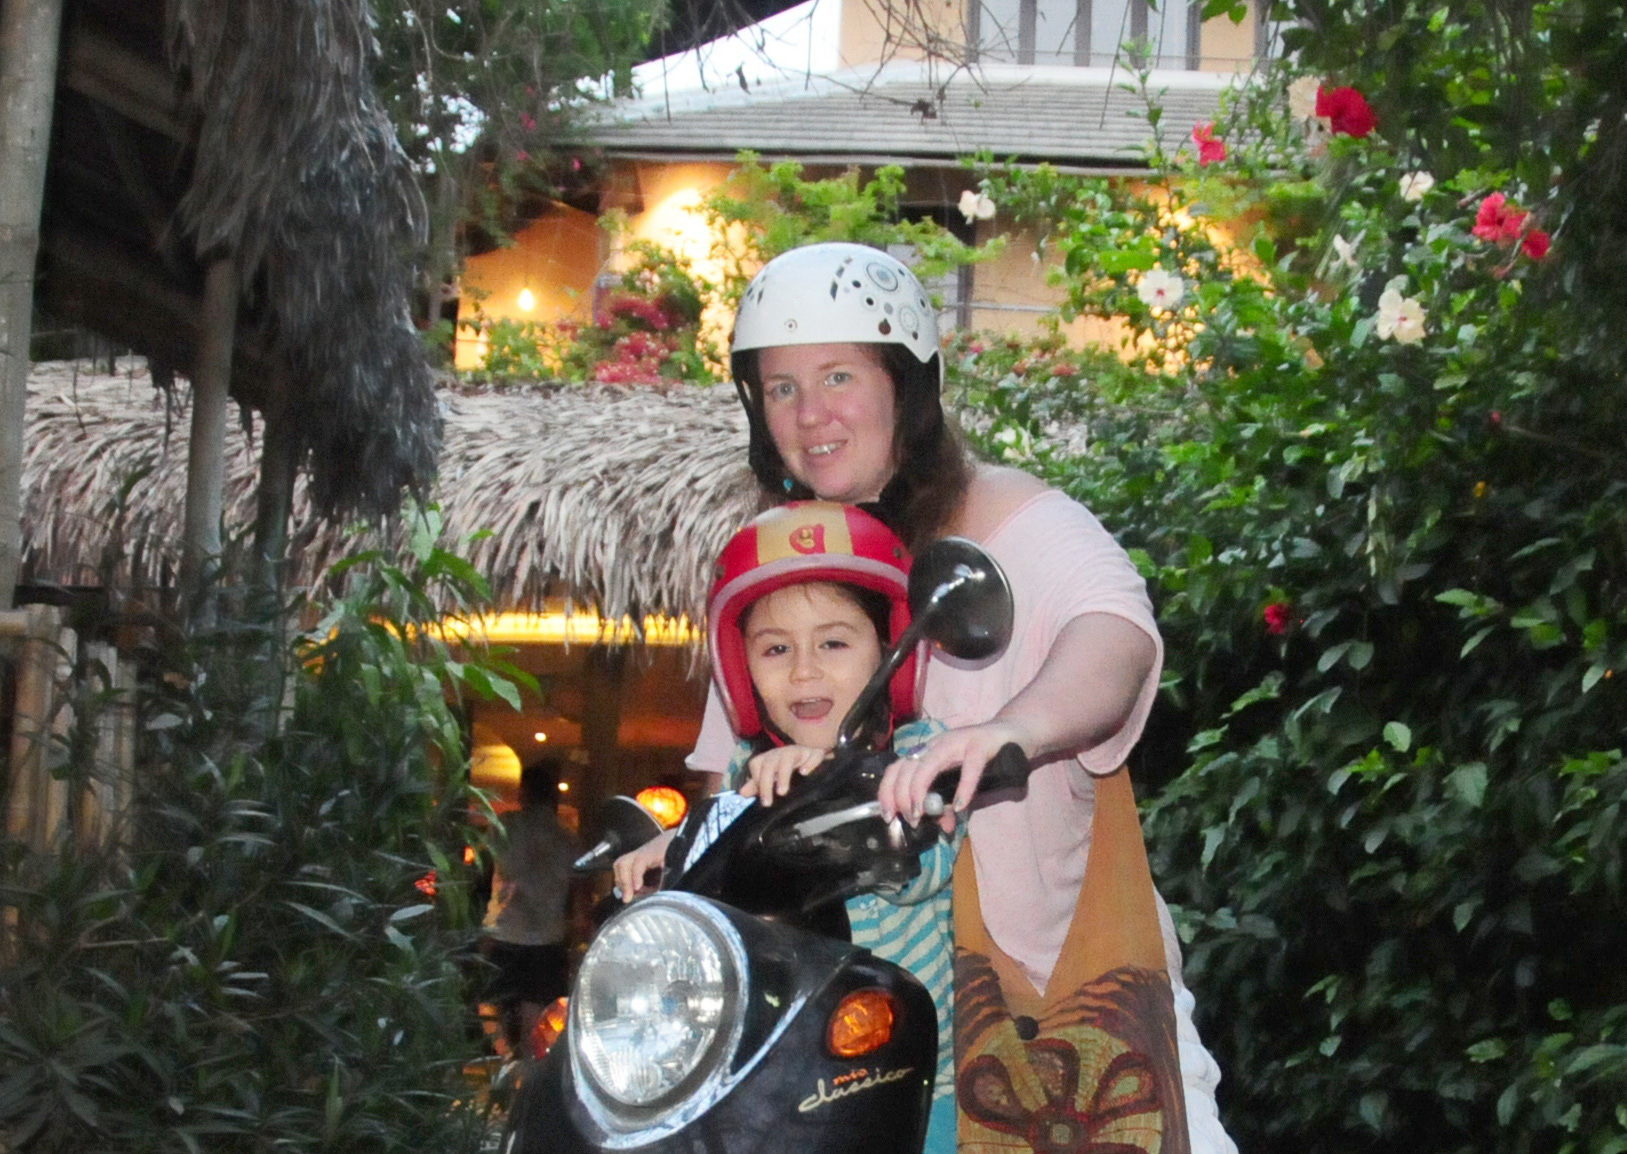 A foreign tourist and her son ride a motorbike at An Villa in Cam Thanh Commune, Hoi An City, Quang Nam Province, Vietmam. Photo: Quoc Viet / Tuoi Tre